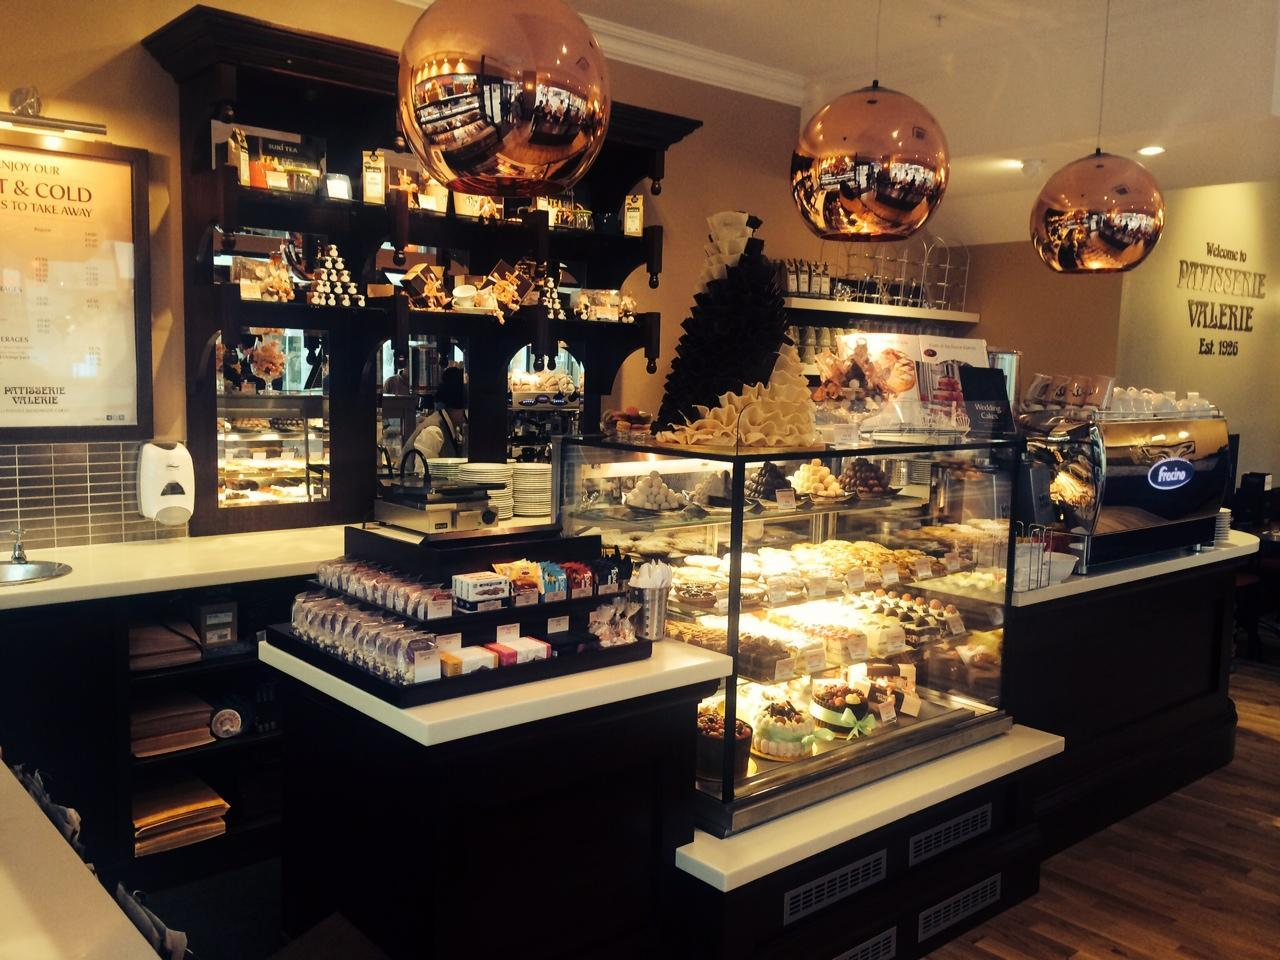 Patisserie Valerie - High Wycombe - Buckinghamshire